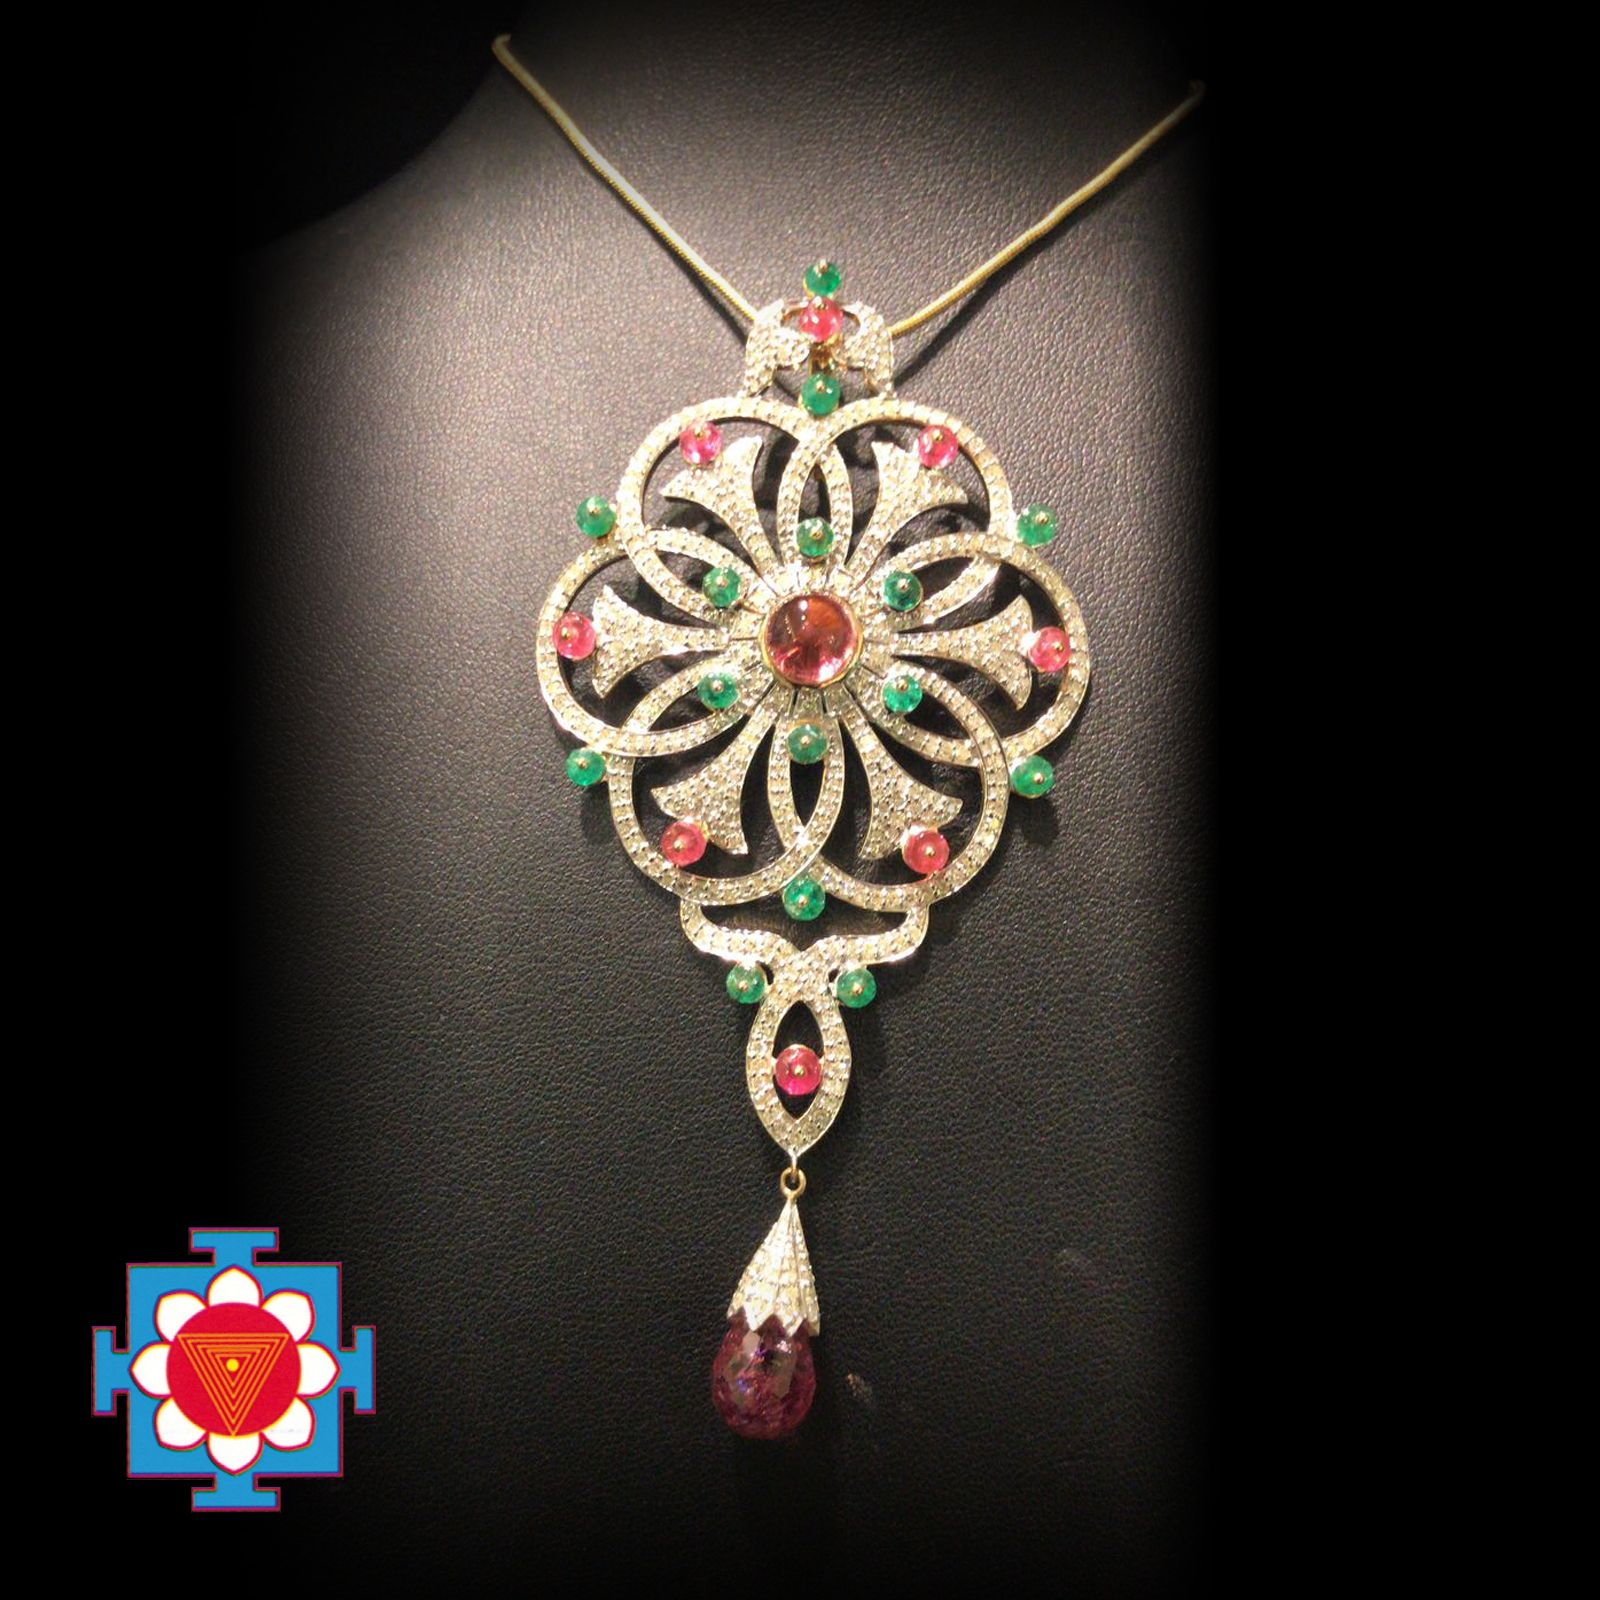 Pendant set in kt gold with diamonds pink cabochon turmaline and